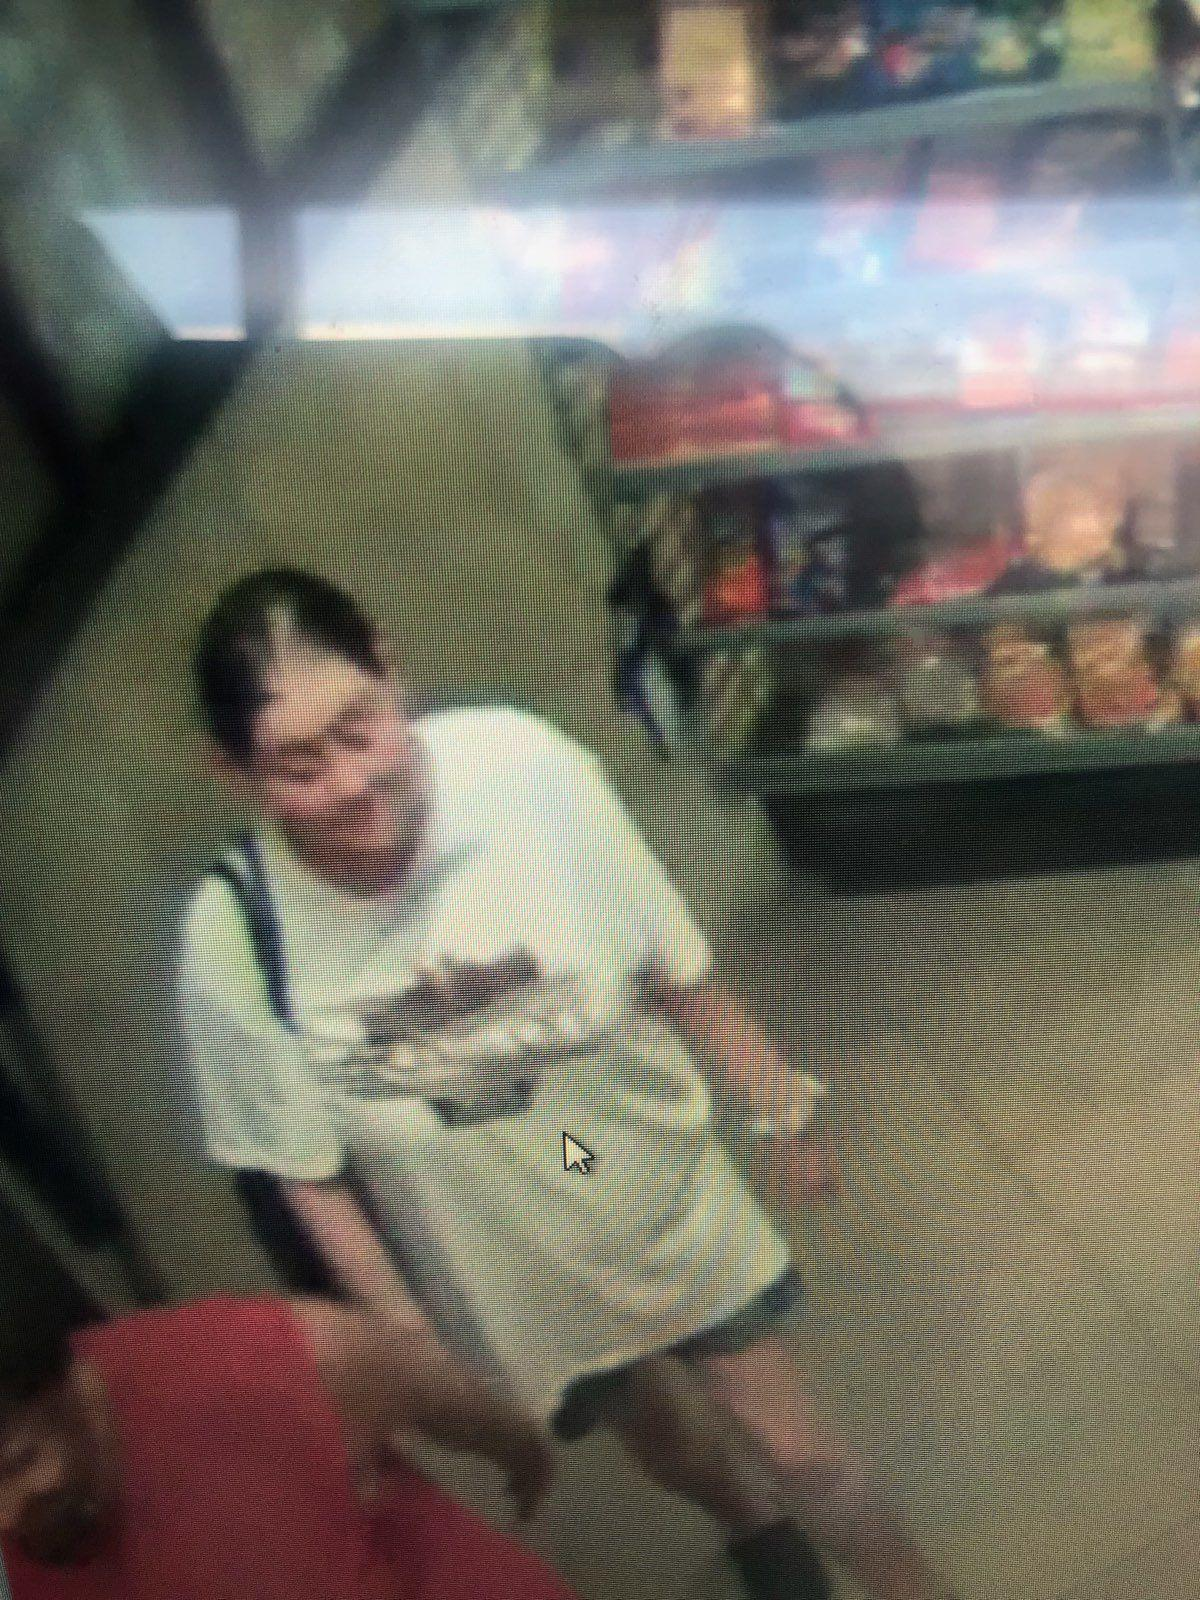 Police: Second suspect in QT kidnapping, sexual assault